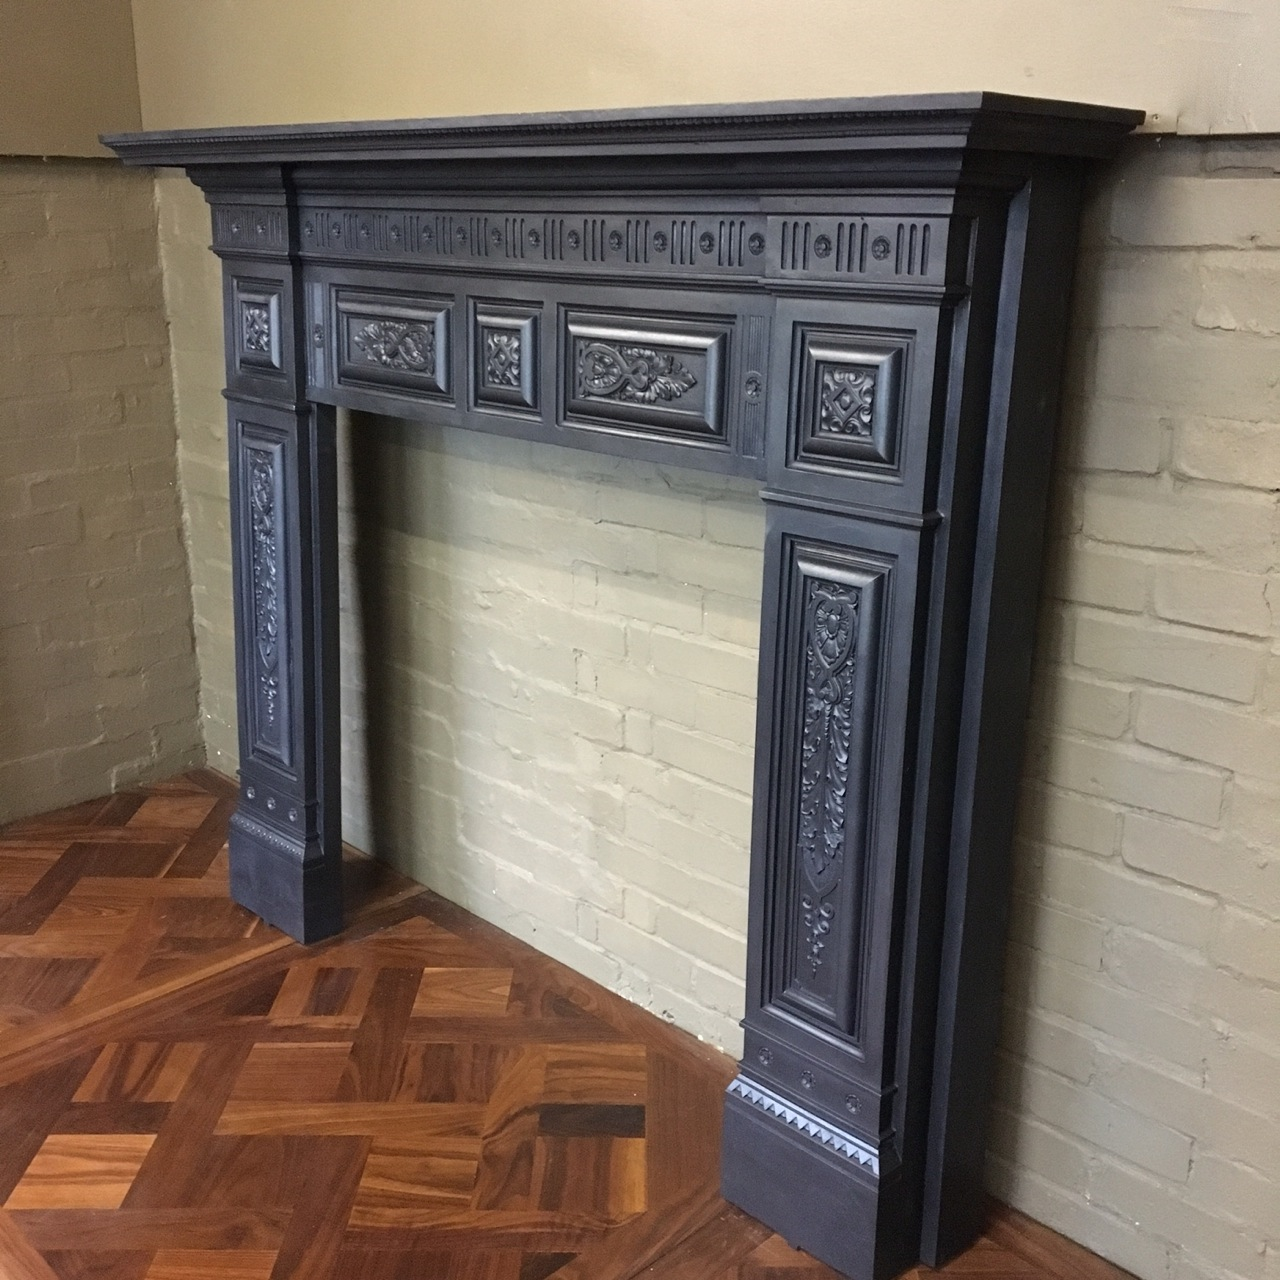 An antique late Victorian fireplace surround in cast iron. This original late Victorian or early Edwardian fire surround features panelled decoration across the lintel and jambs of the piece